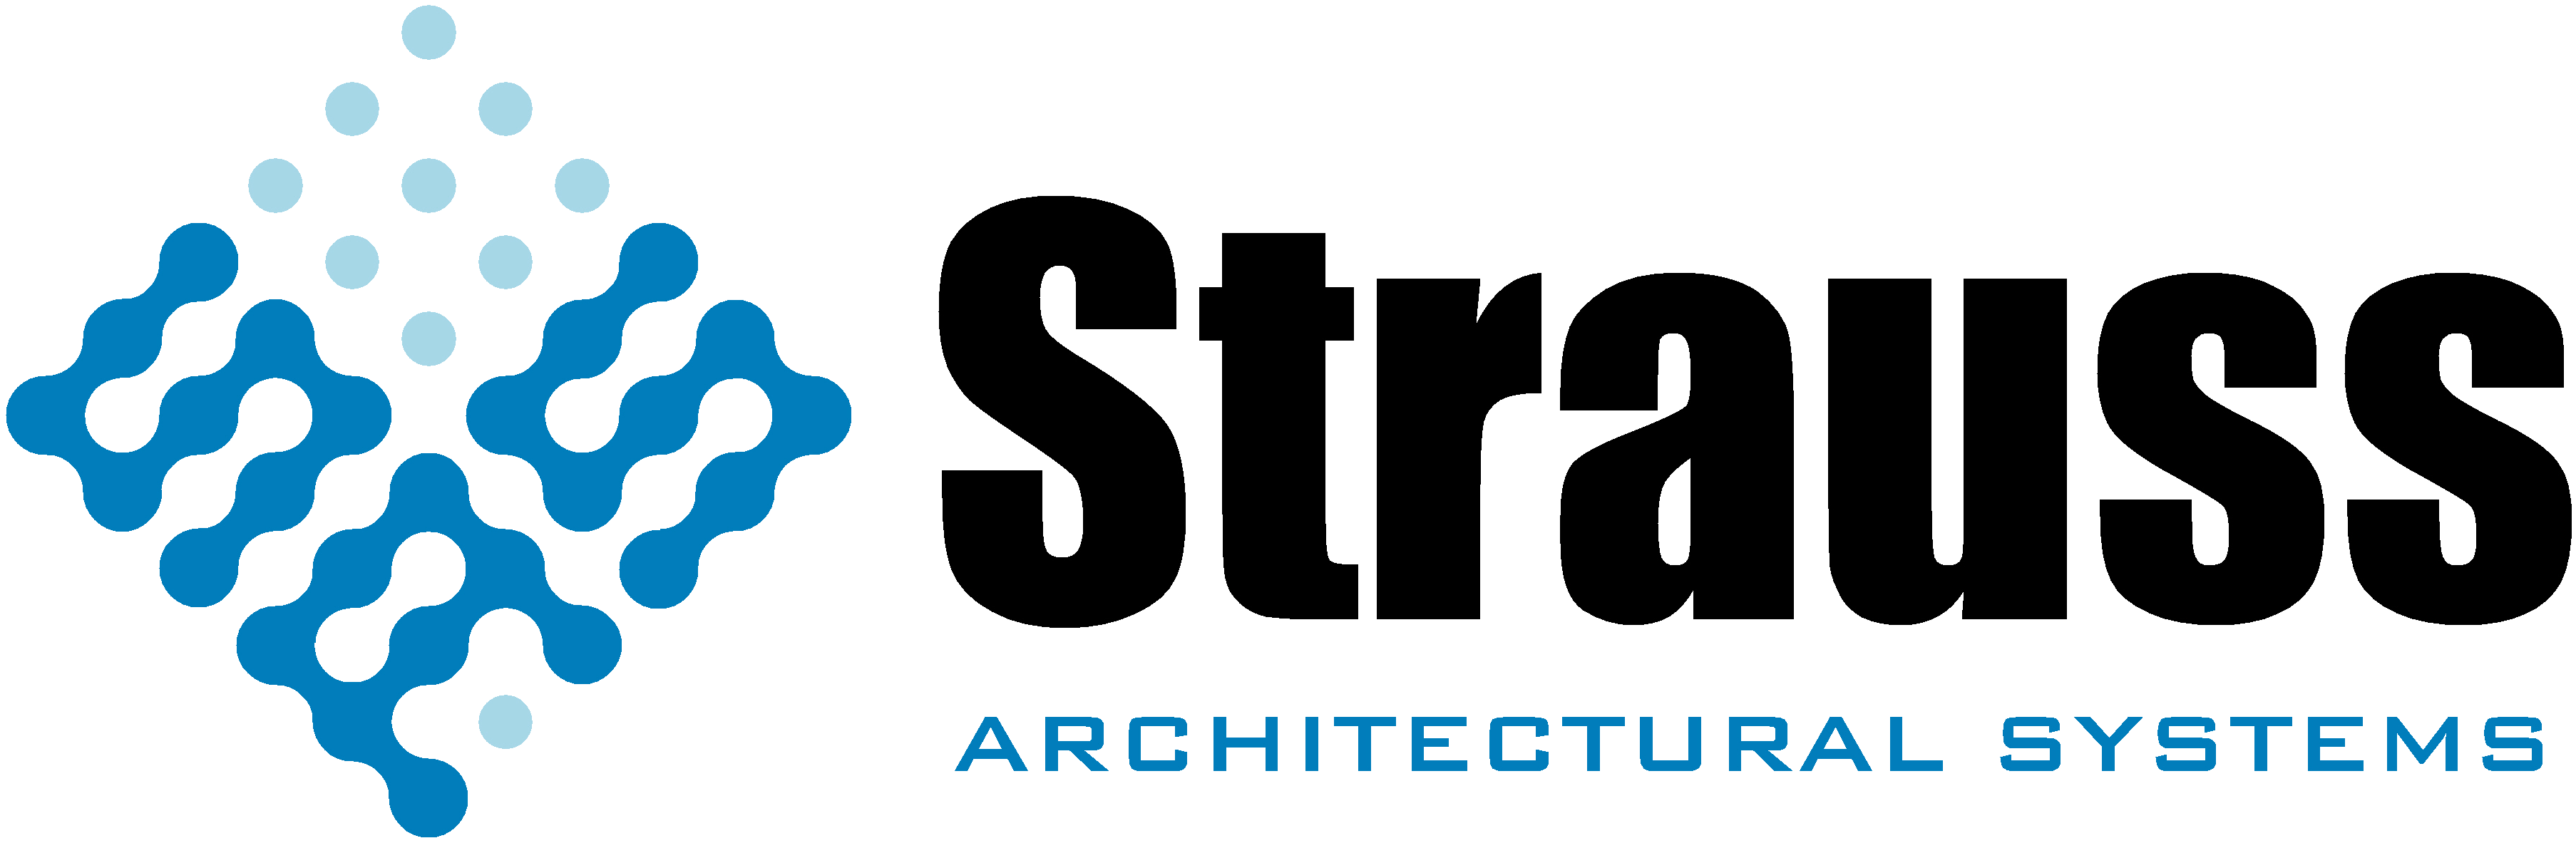 Strauss Architectural Systems